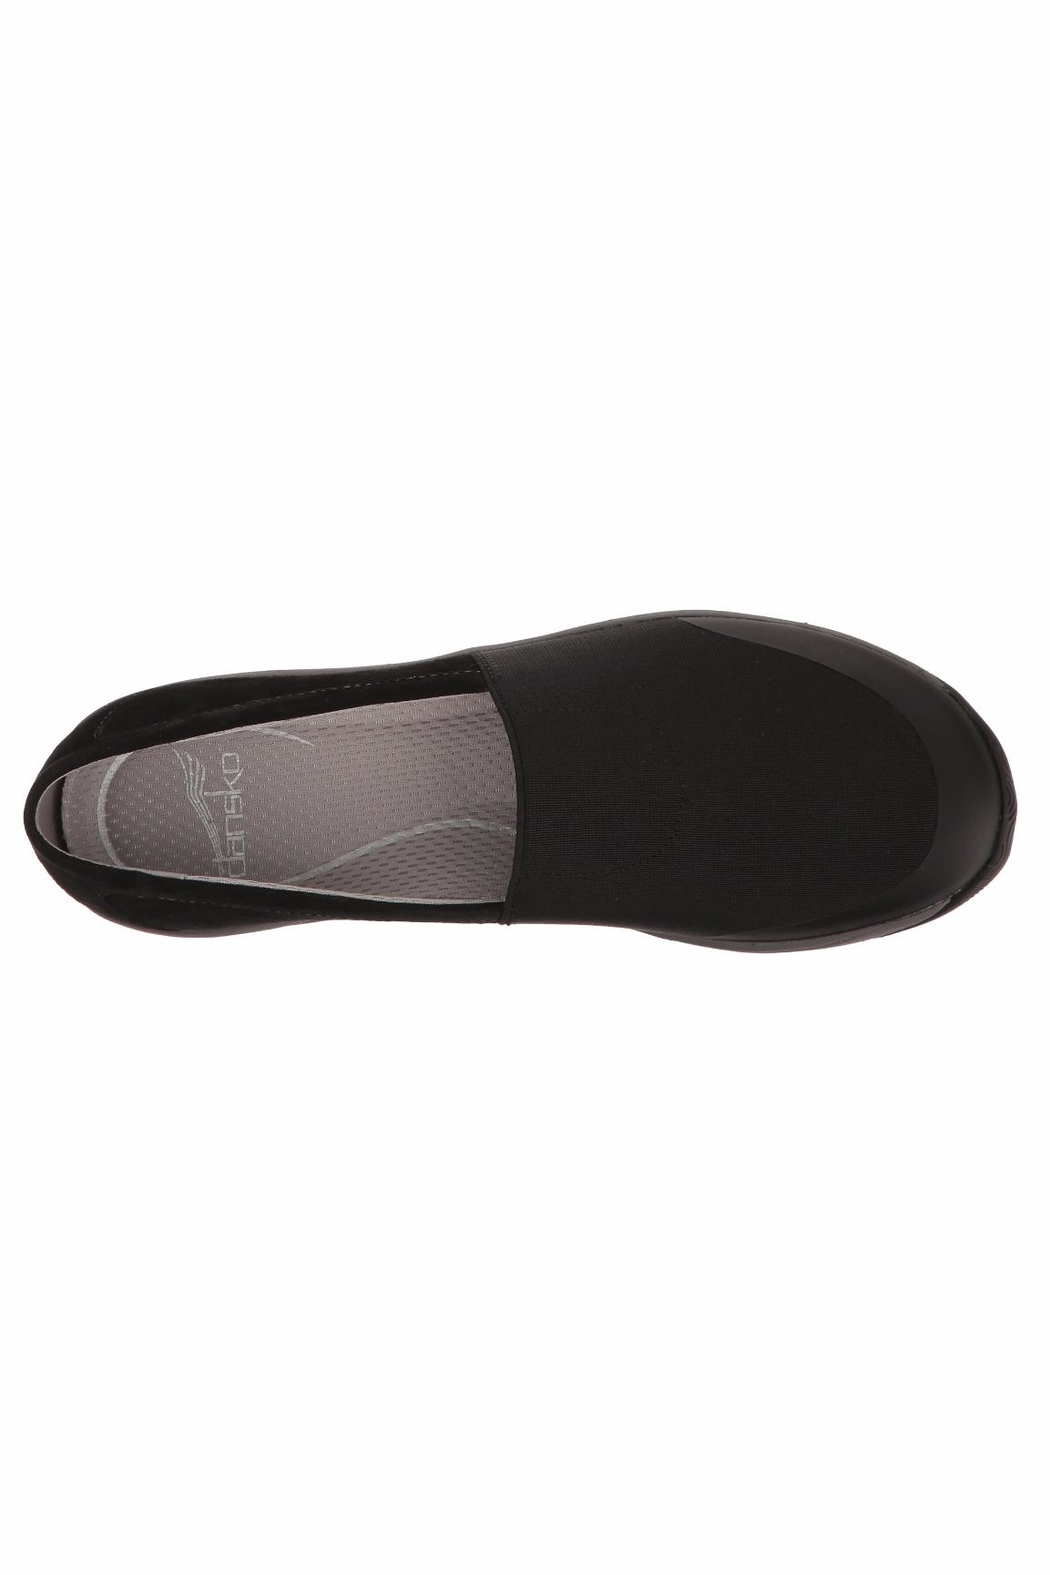 Dansko Harriette Slip On Sneaker - Back Cropped Image